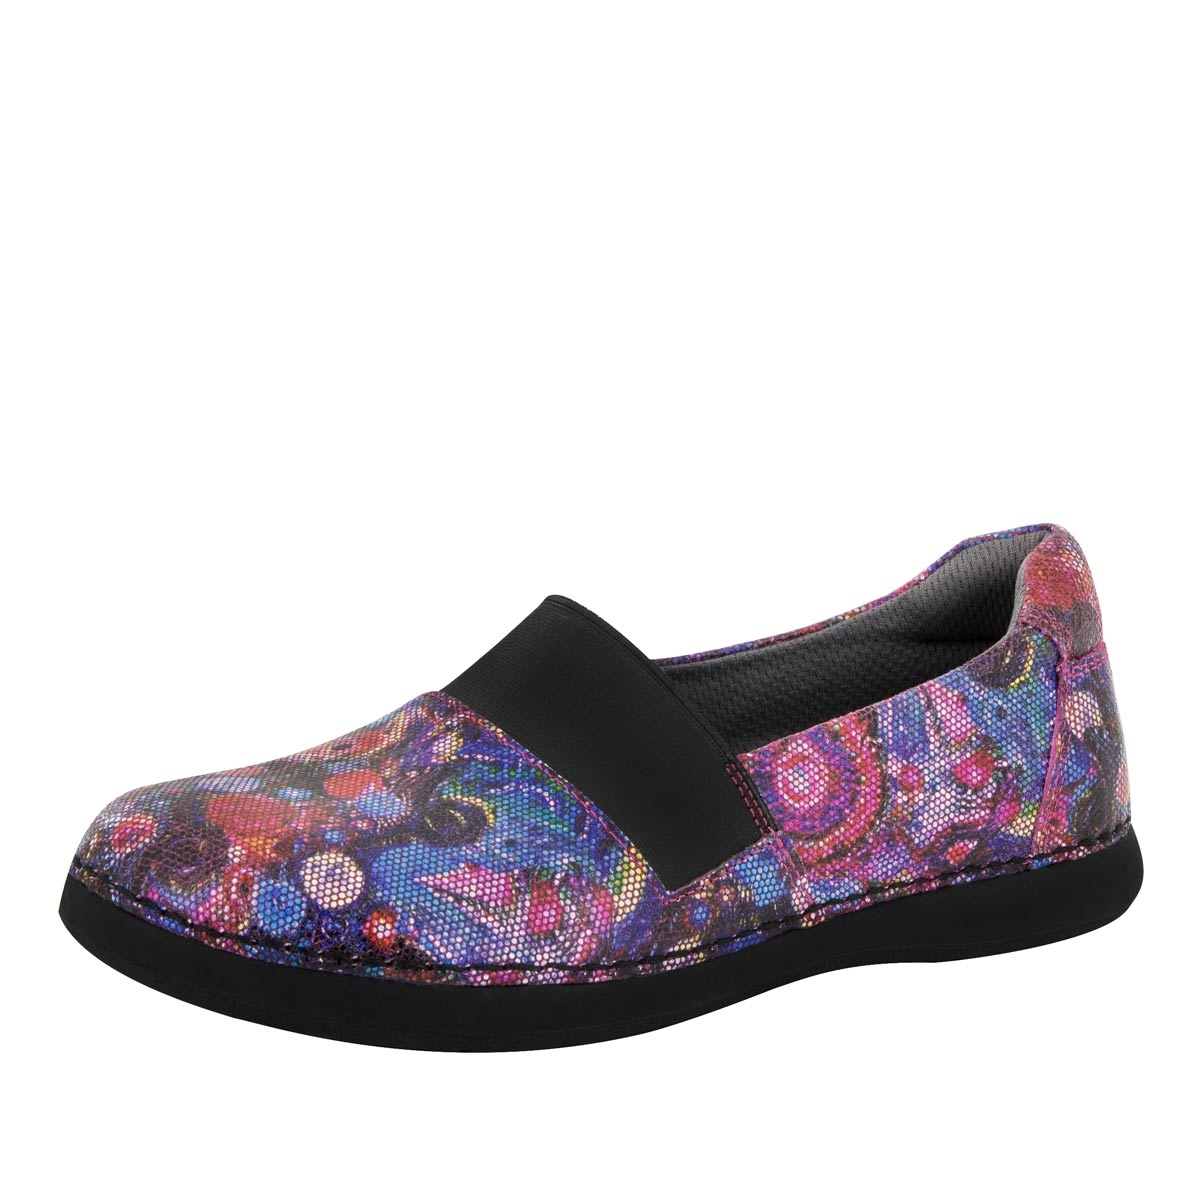 Alegria Glee Wowie Zowie slip resistant comfort flats for women. View  Larger Photo Email ...